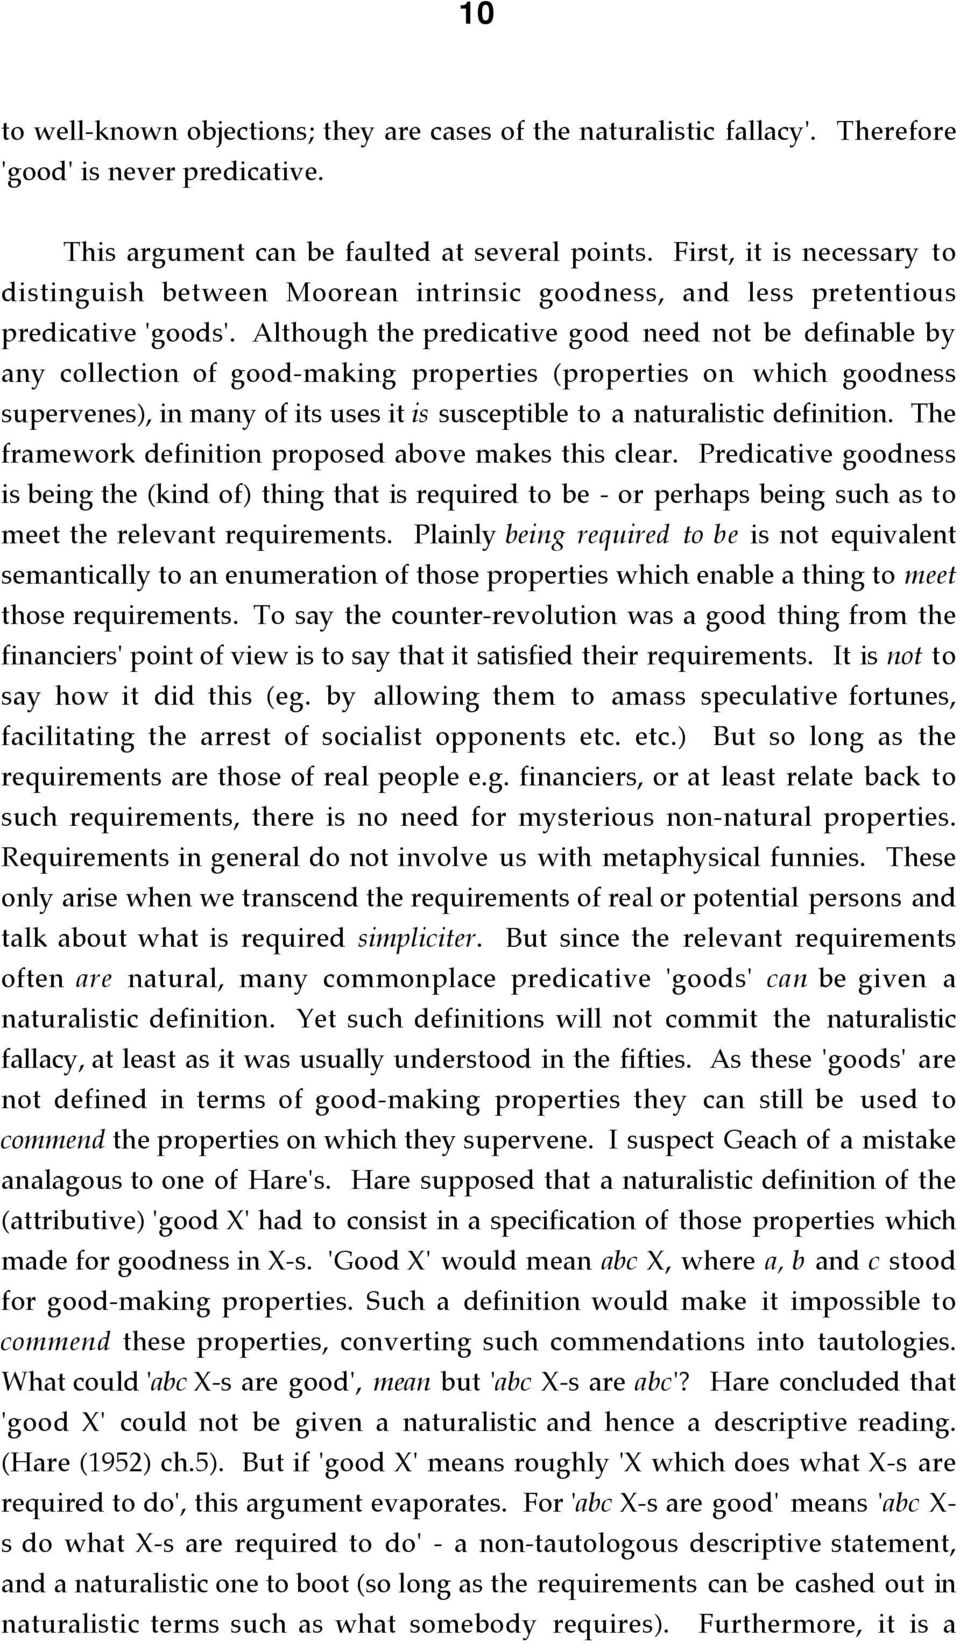 Although the predicative good need not be definable by any collection of good-making properties (properties on which goodness supervenes), in many of its uses it is susceptible to a naturalistic